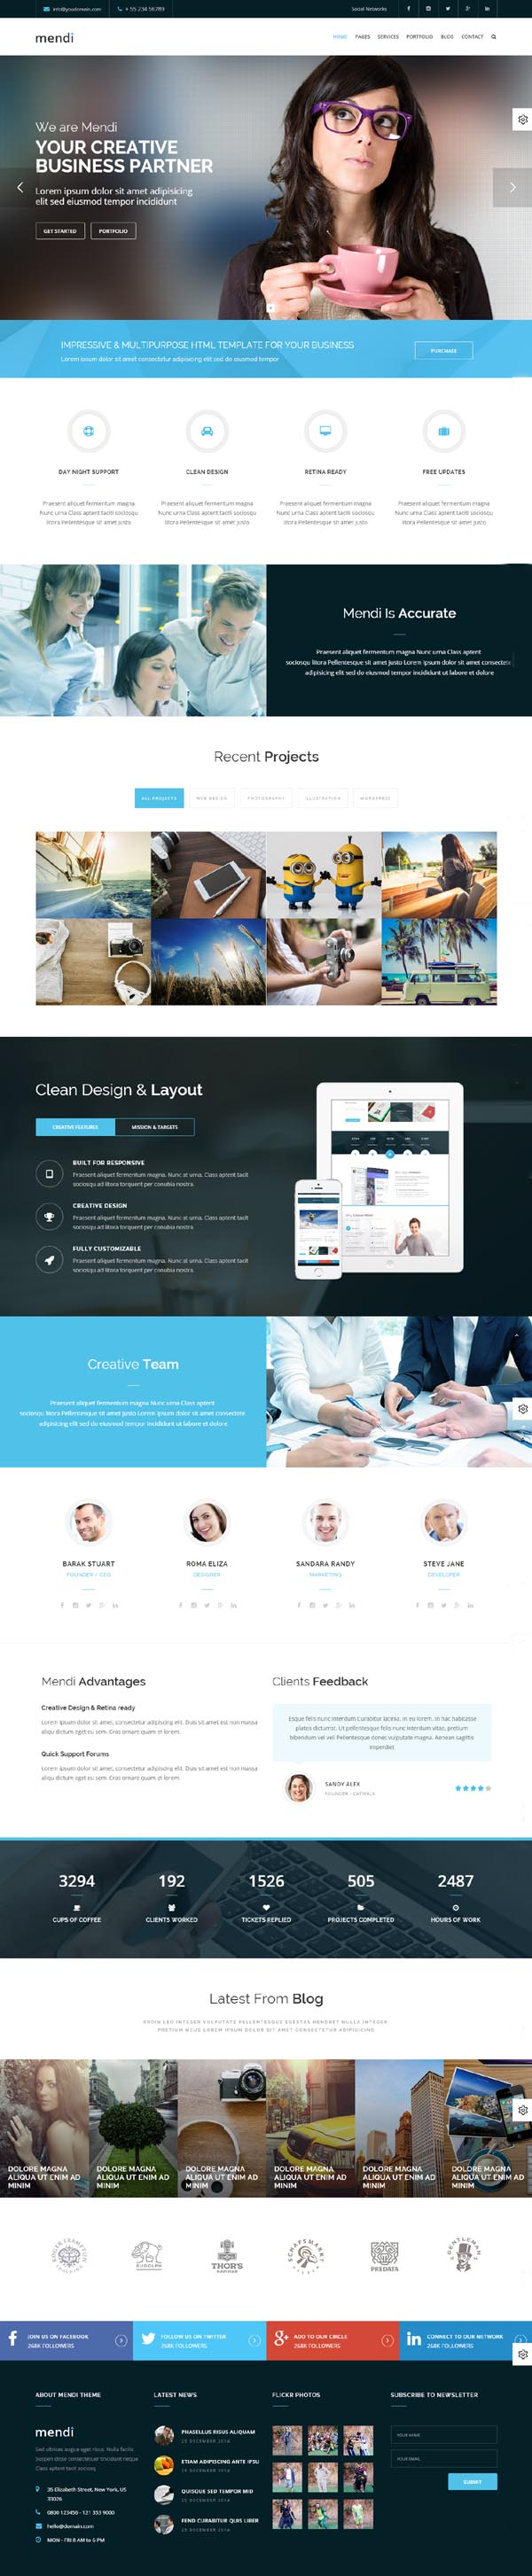 Mendi - MultiPurpose Corporate HTML5 Template